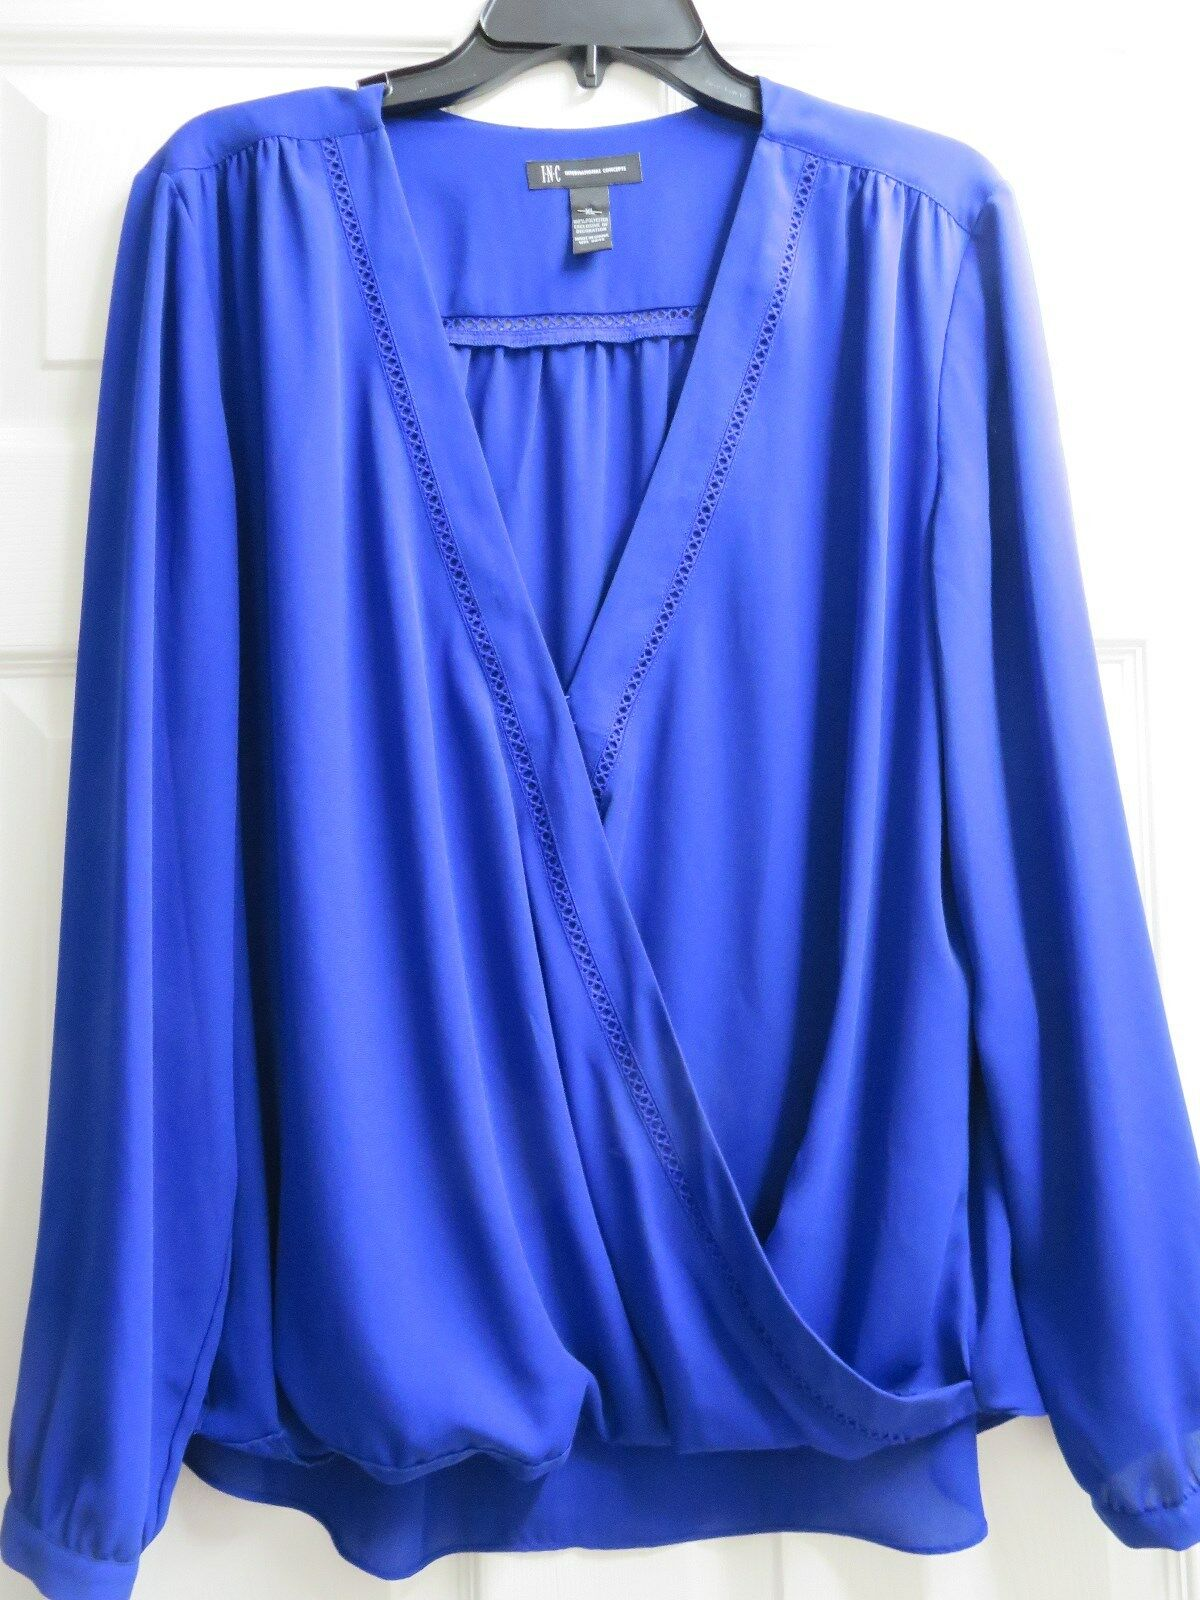 Inc International Concepts Women's Royal bluee Long Sleeve Top XL Draped Front